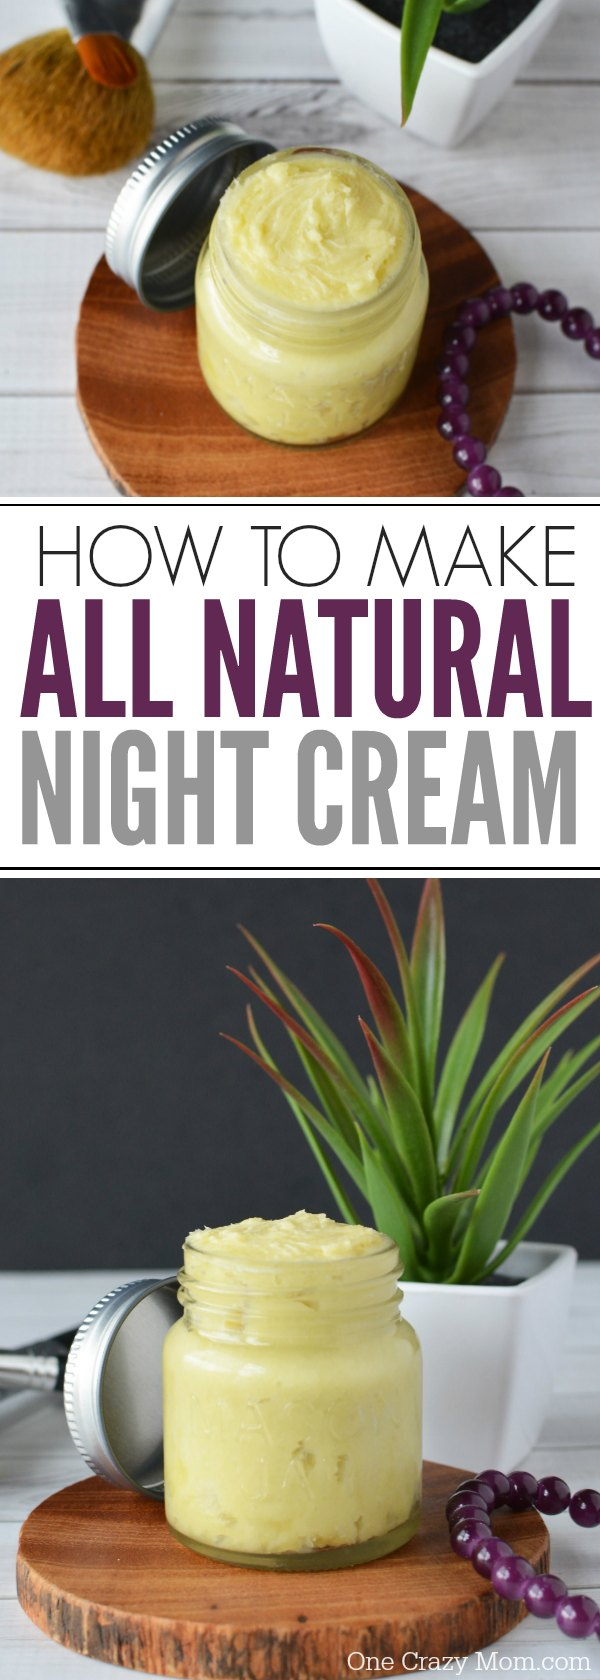 DIY Night Cream only requires a few simple ingredients but the results are amazing. If you struggle with dry skin, give this homemade night cream a try.